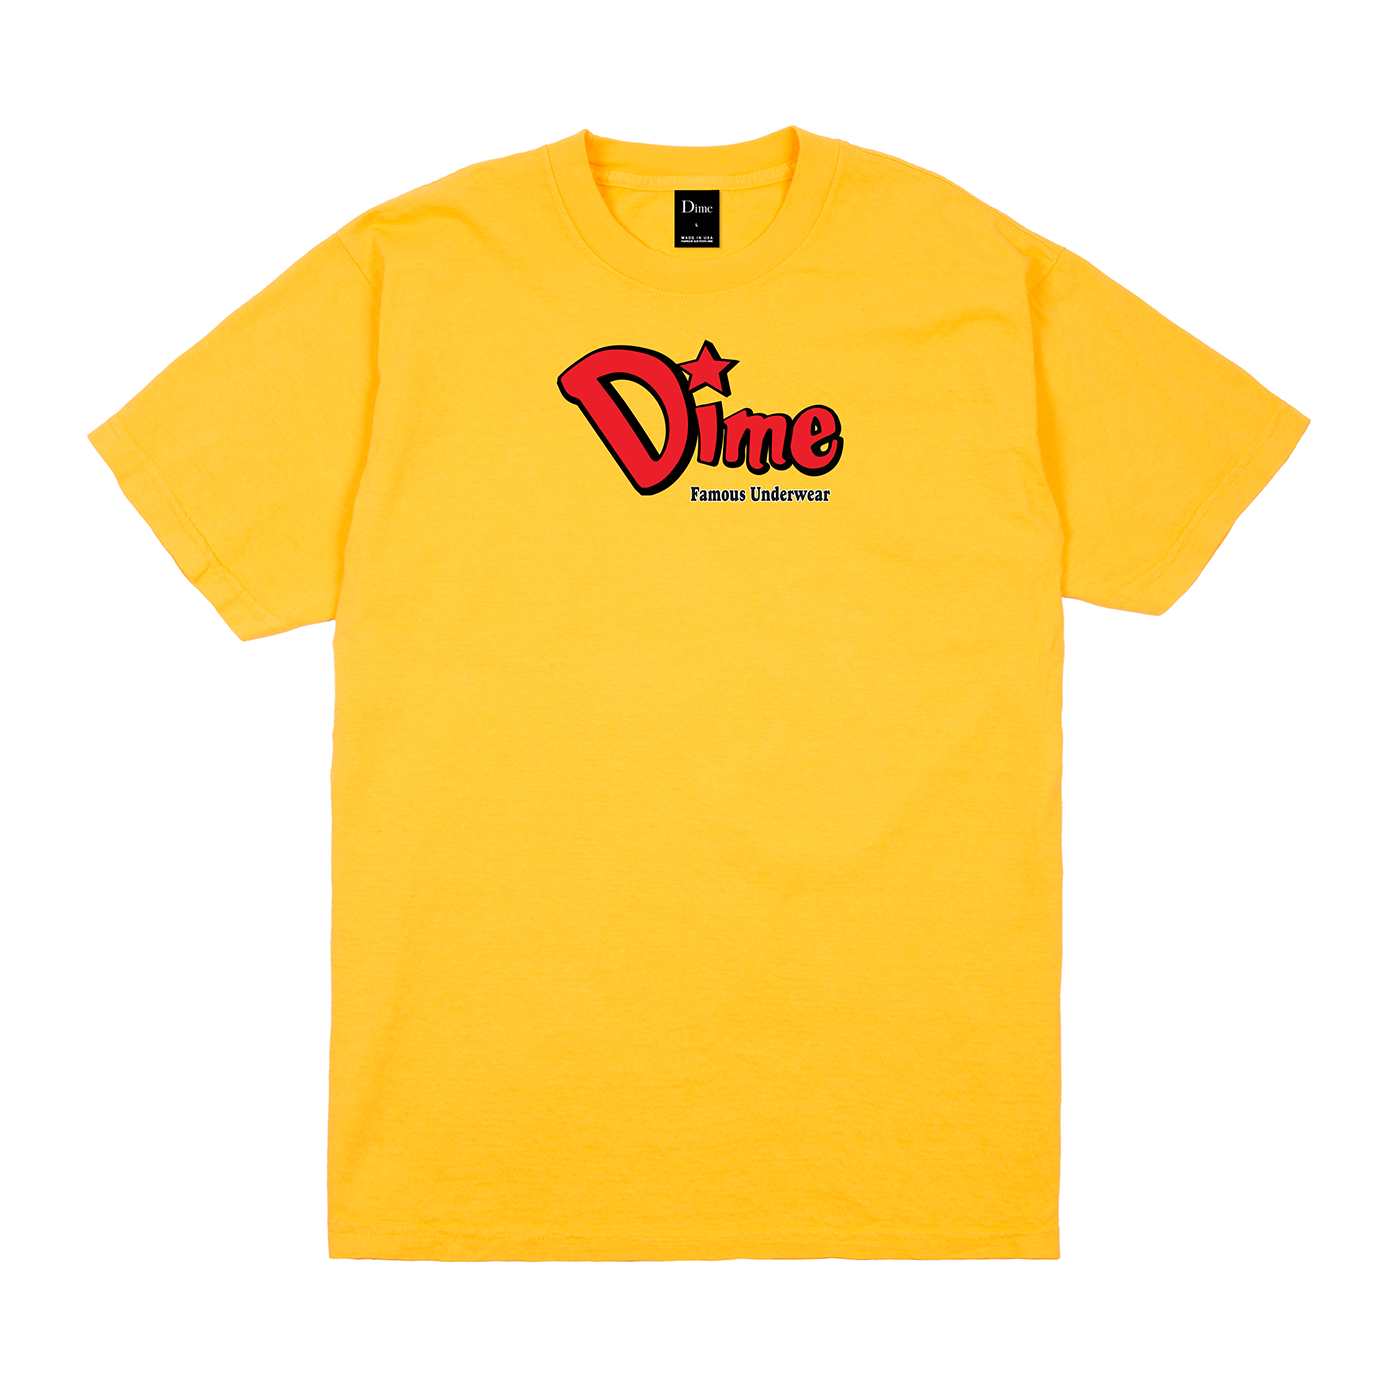 Dime Famous Underwear Tee Product Photo #1